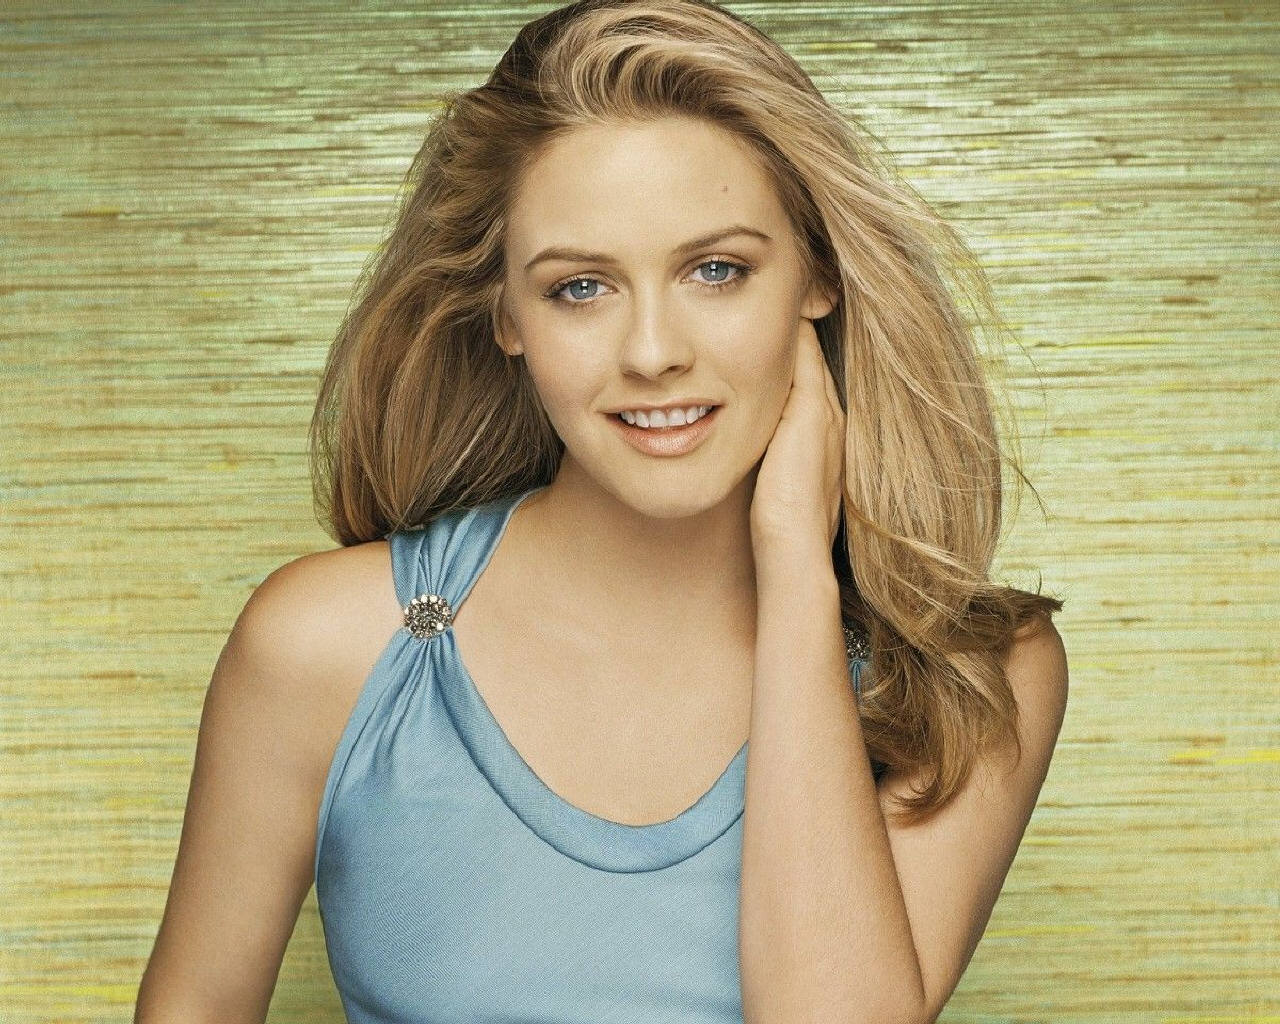 33 Alicia Silverstone Wallpapers On Wallpapersafari